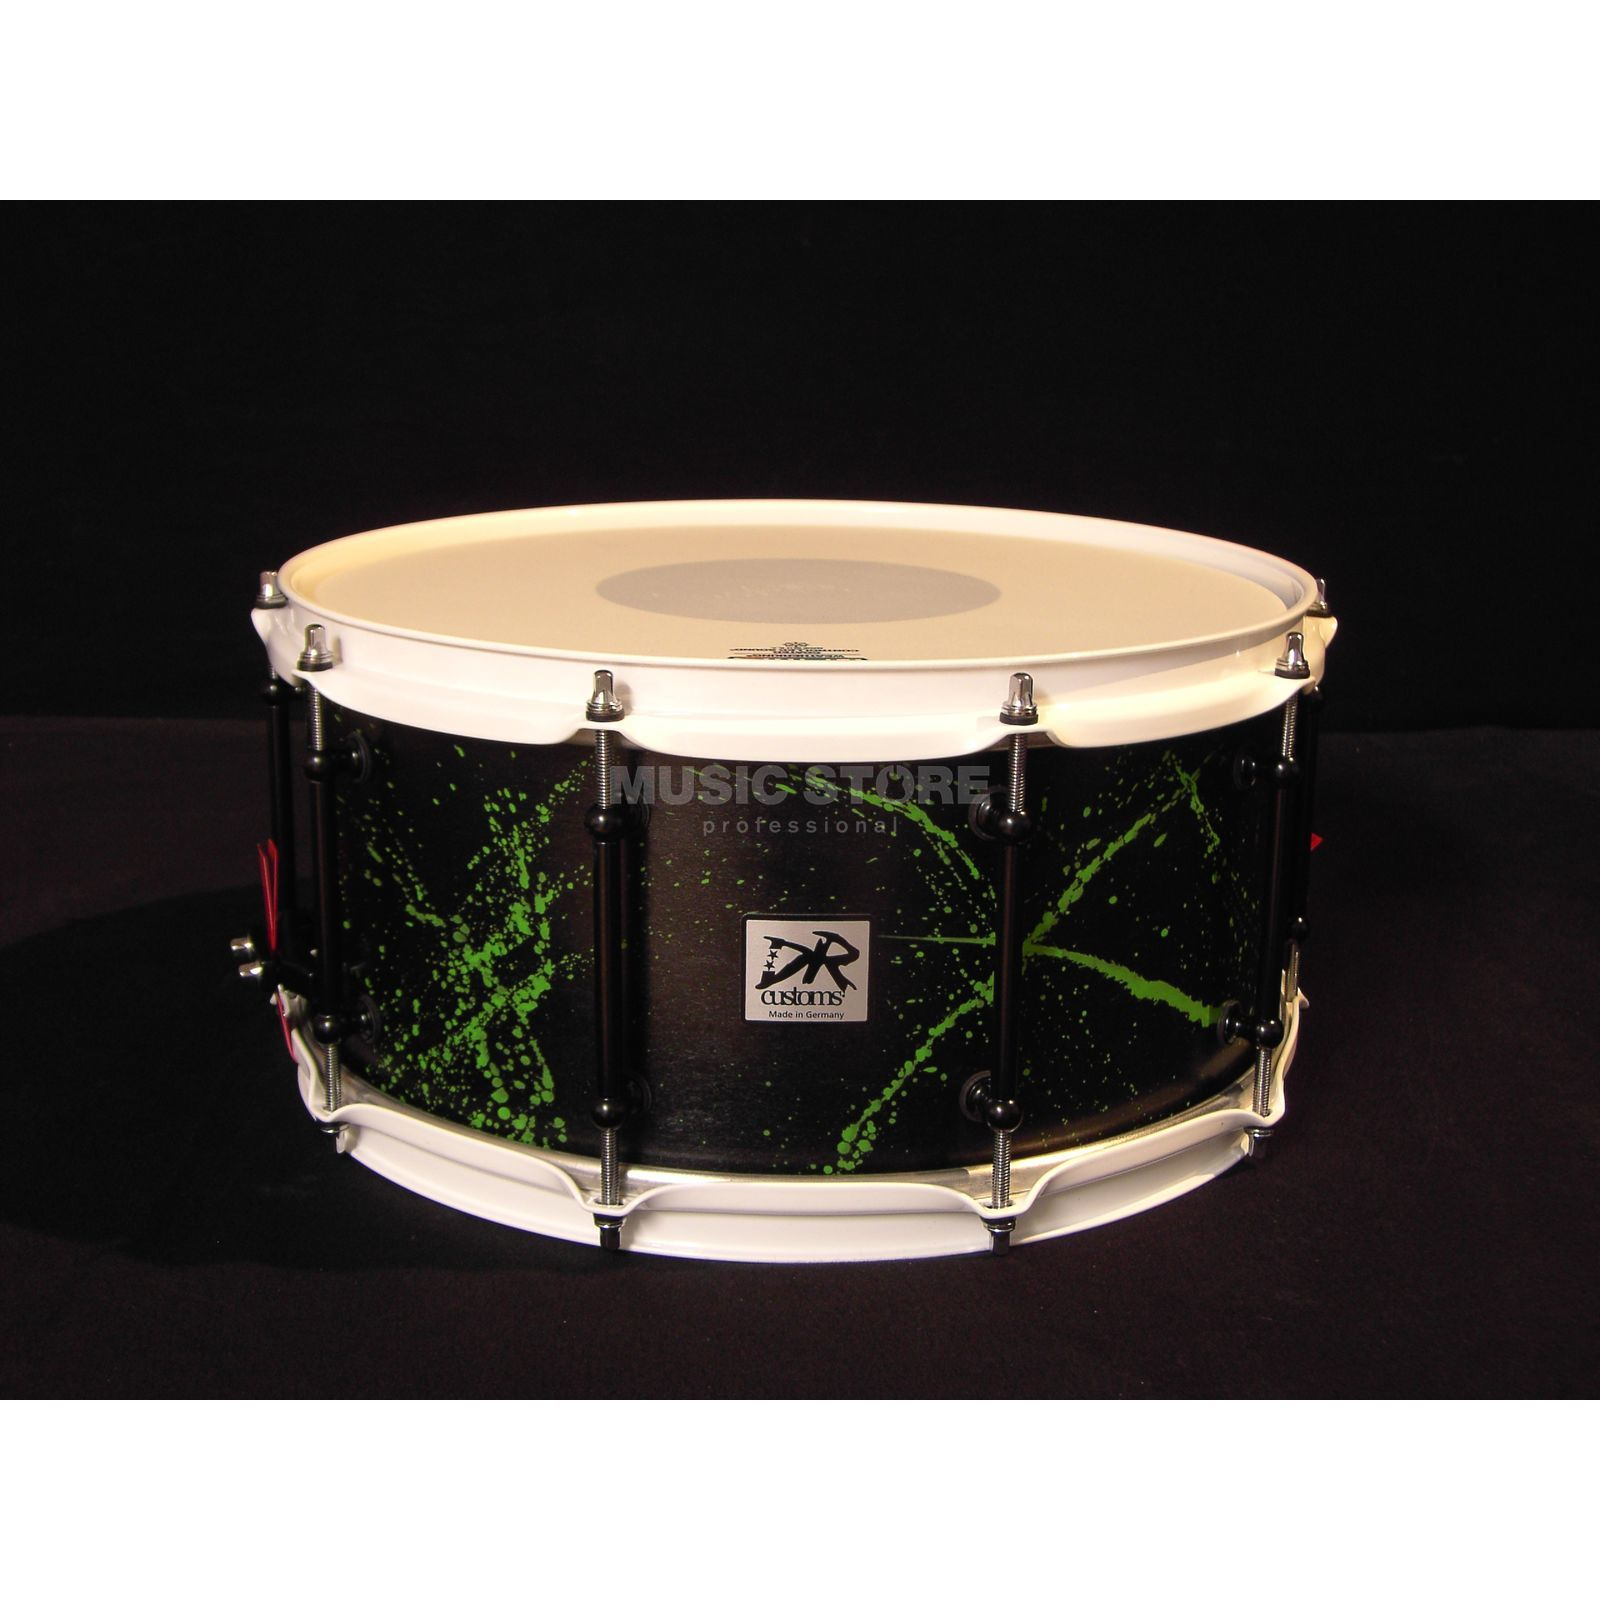 "DR Customs Splatter Snare 14""x6.5"", #Black Satin, Green Splatter Produktbillede"